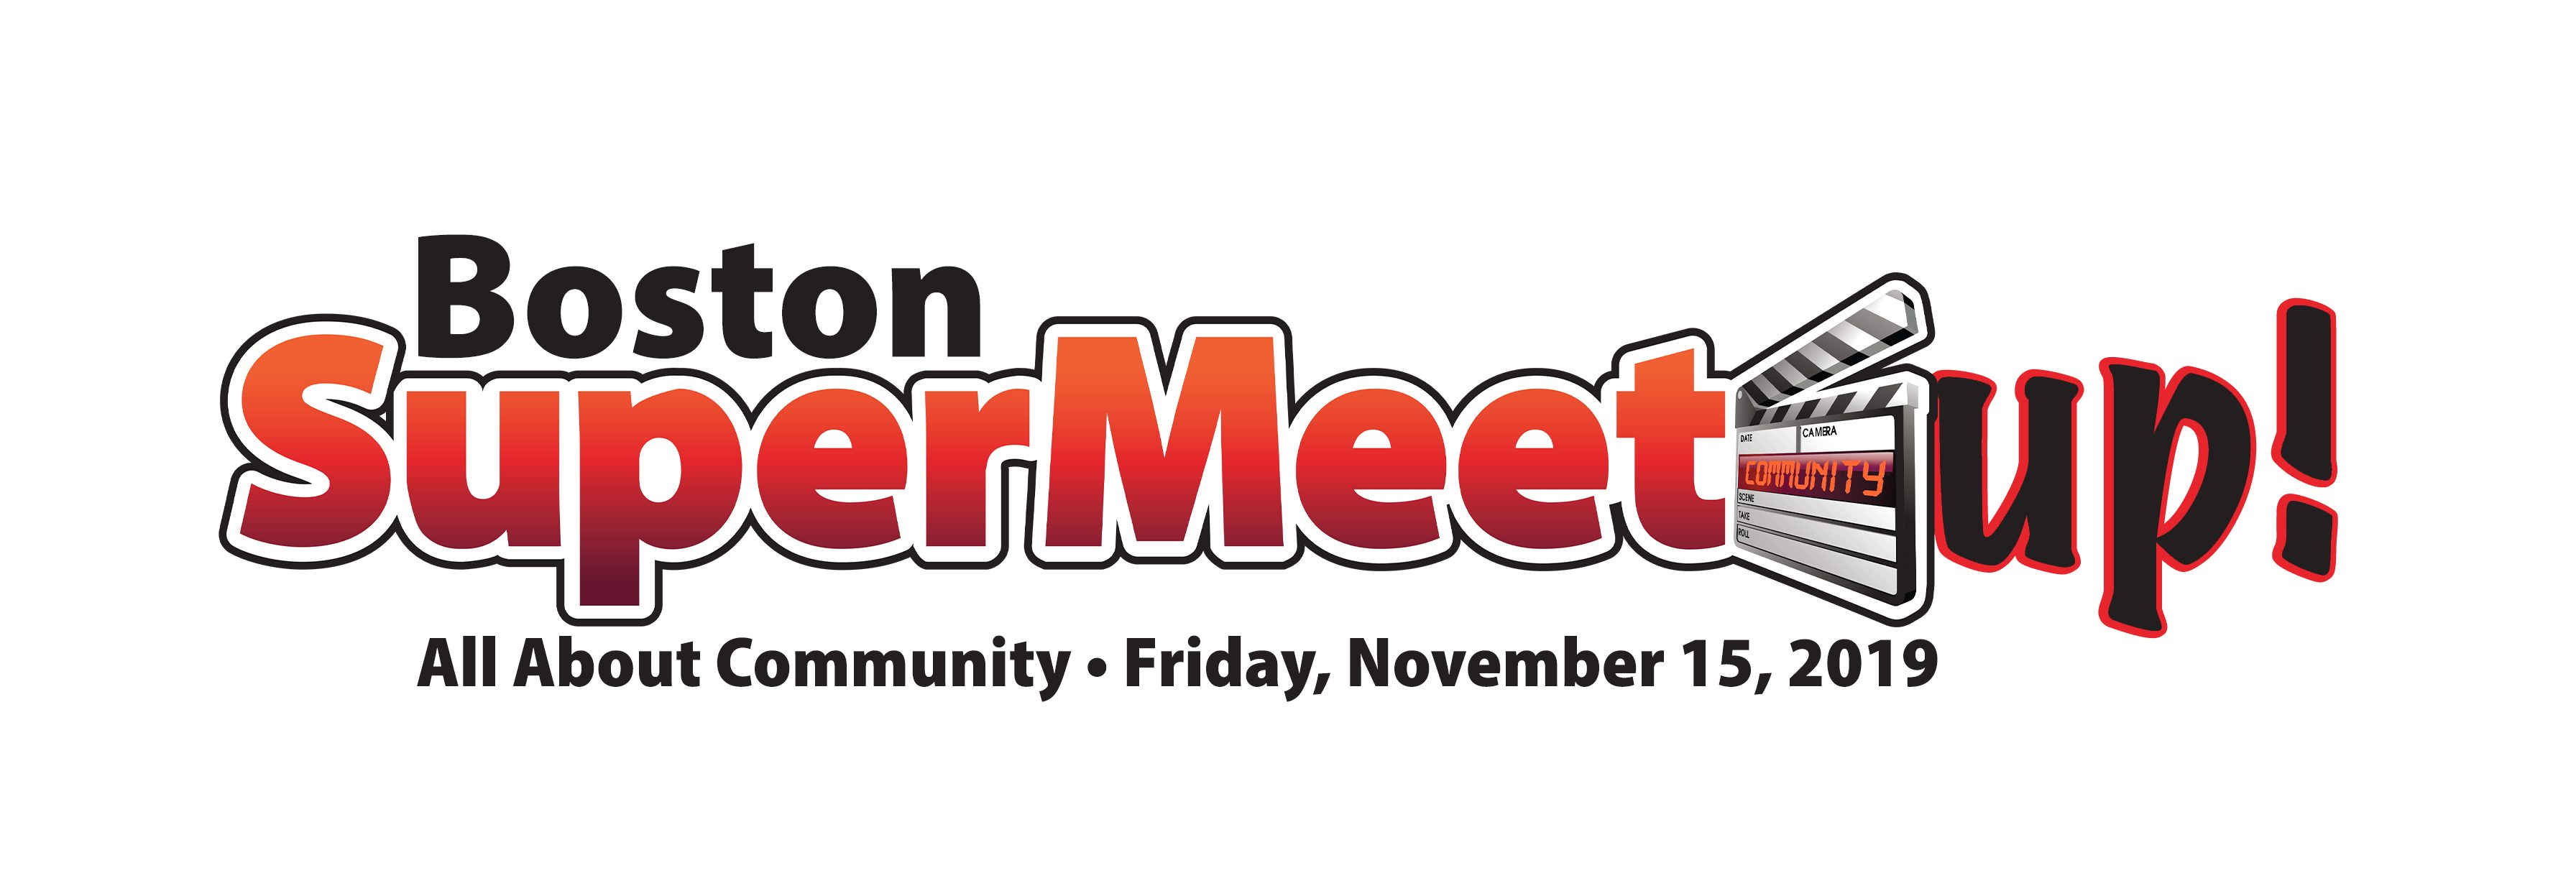 The Supermeet returns to Boston this November 7